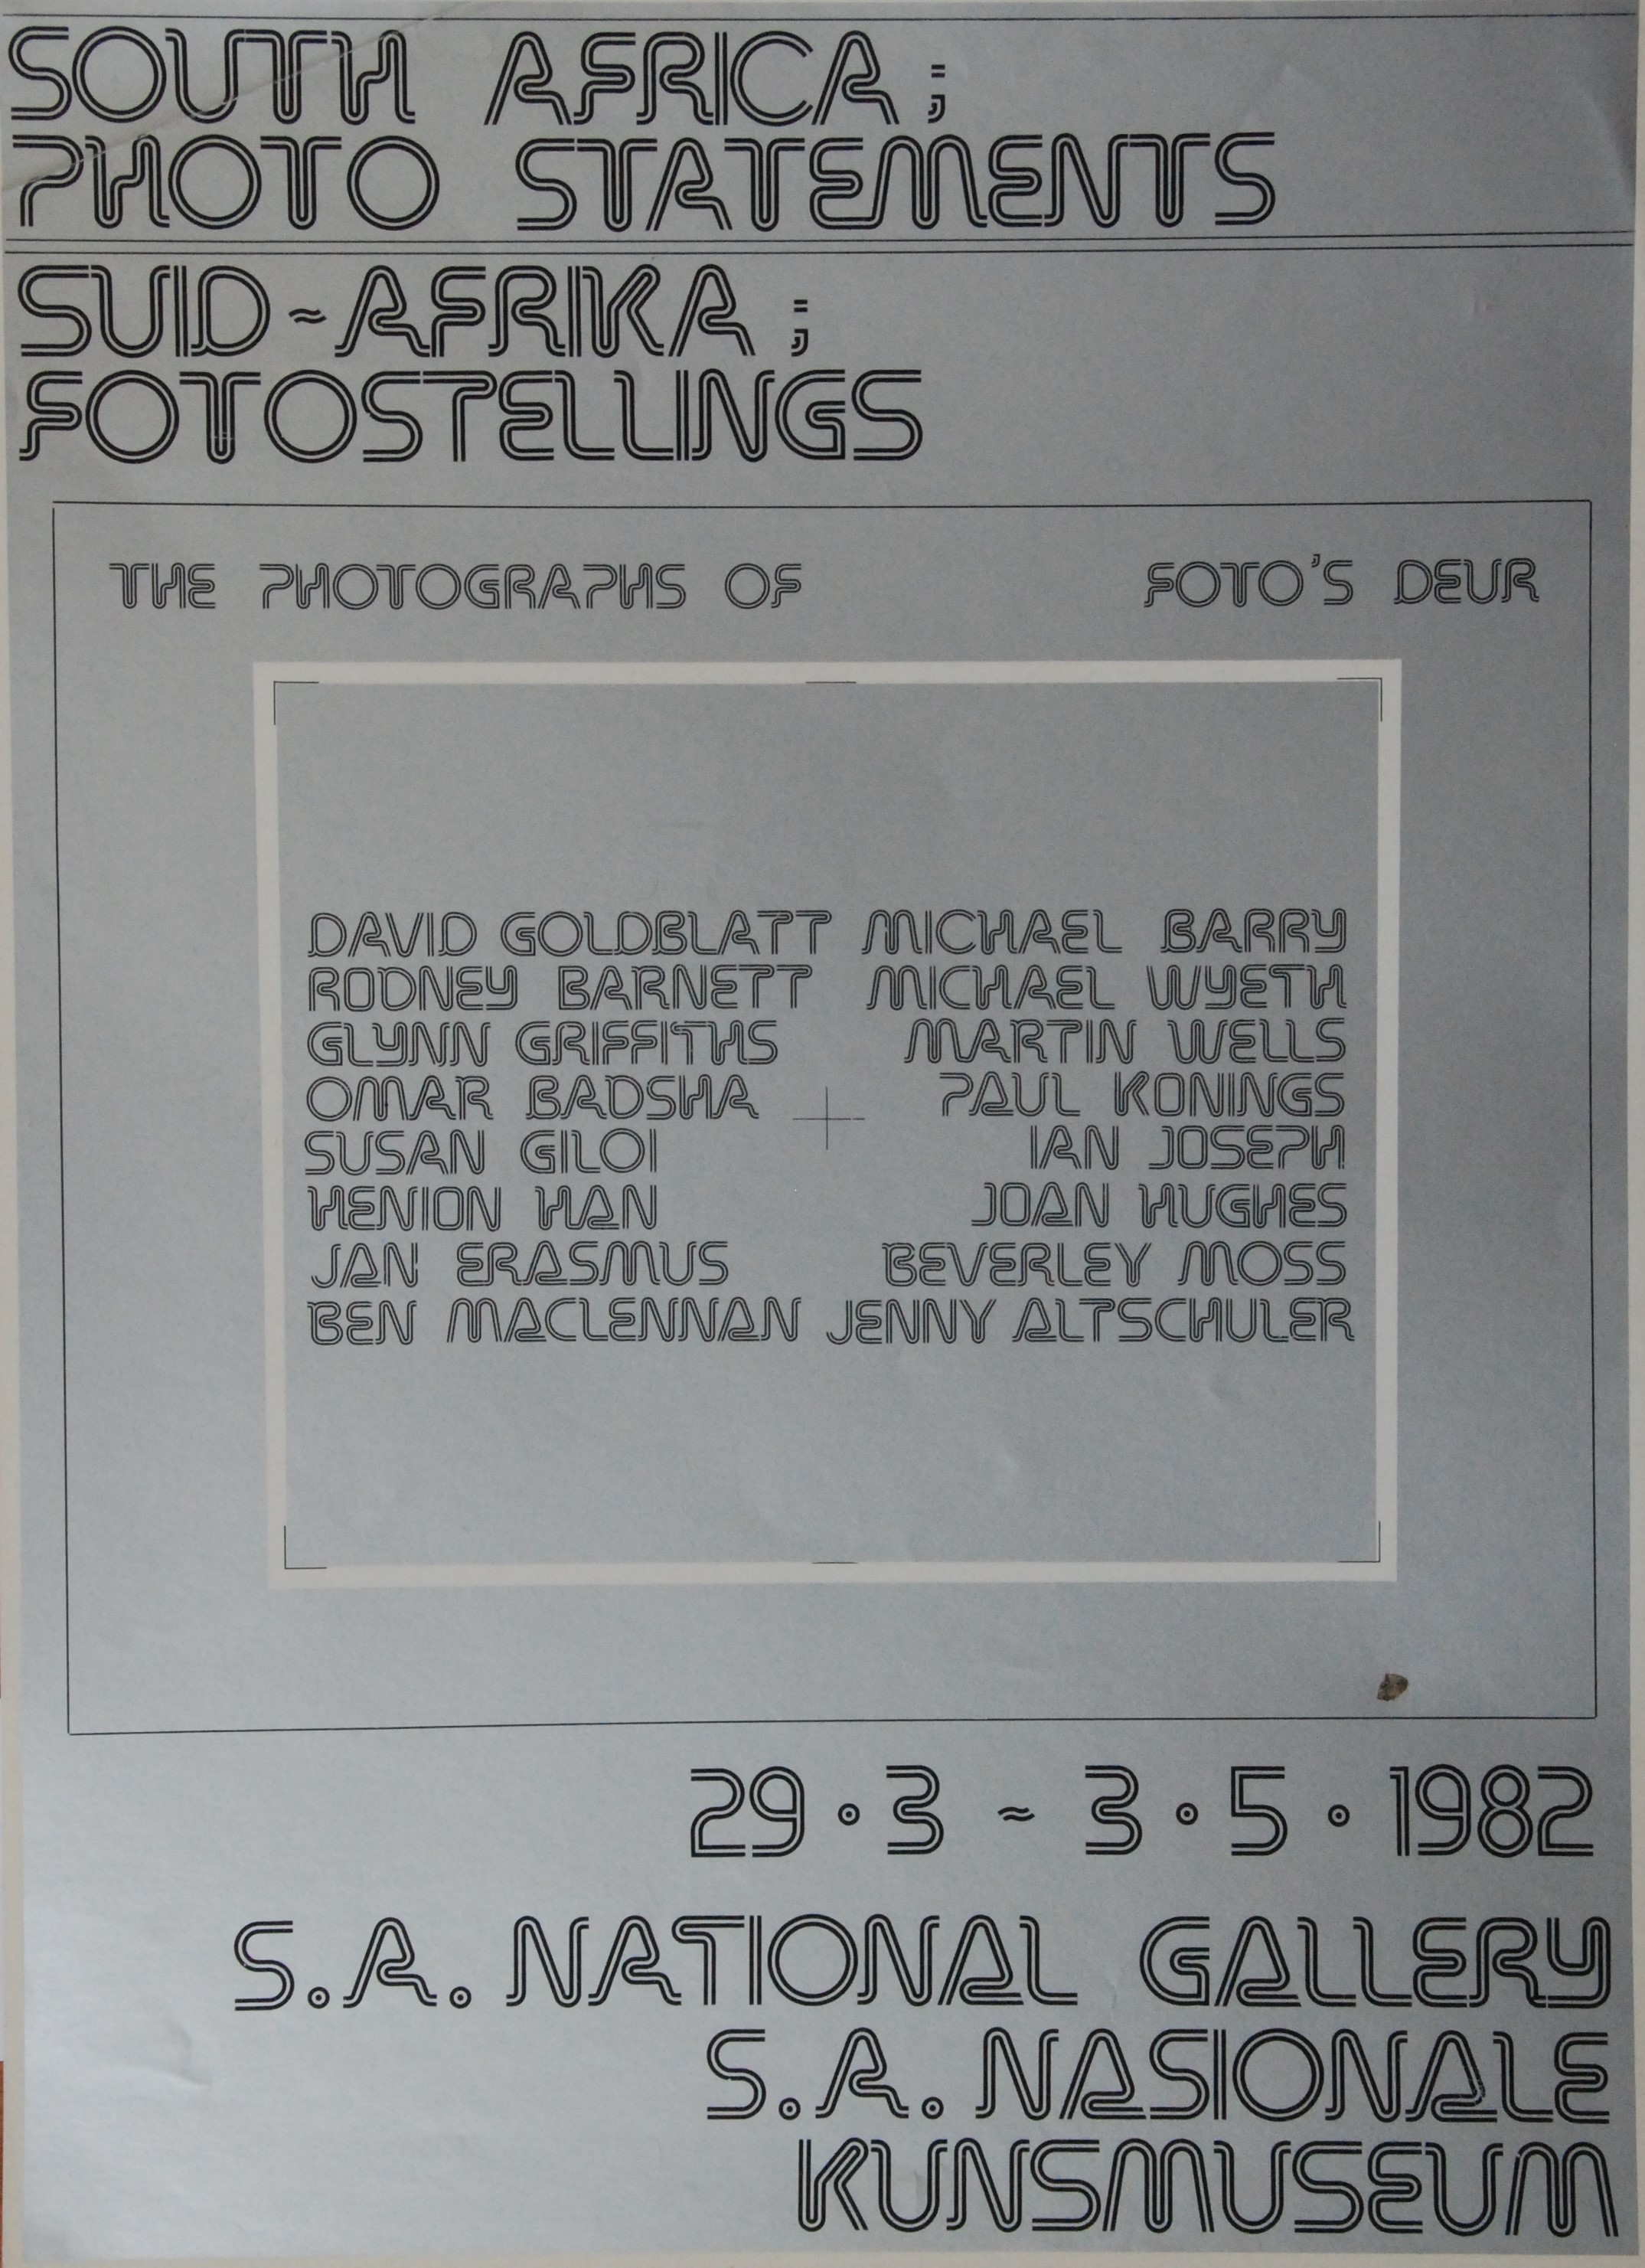 South Africa: Photo Statements Poster 1982